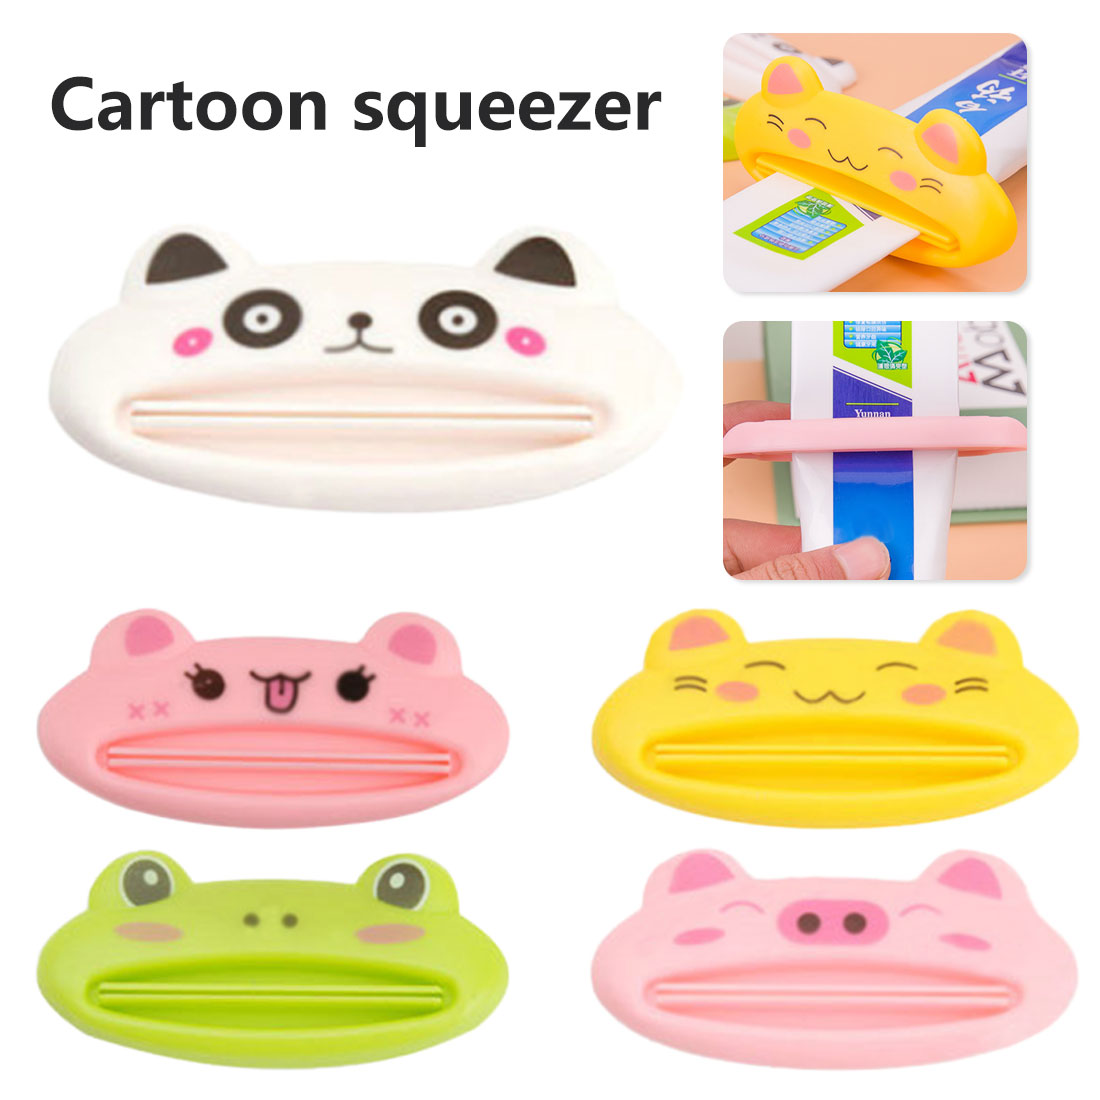 Home Cute Animal Multi function squeezer toothpaste squeezer Home Commodity Bathroom Tube Cartoon Toothpaste Dispenser